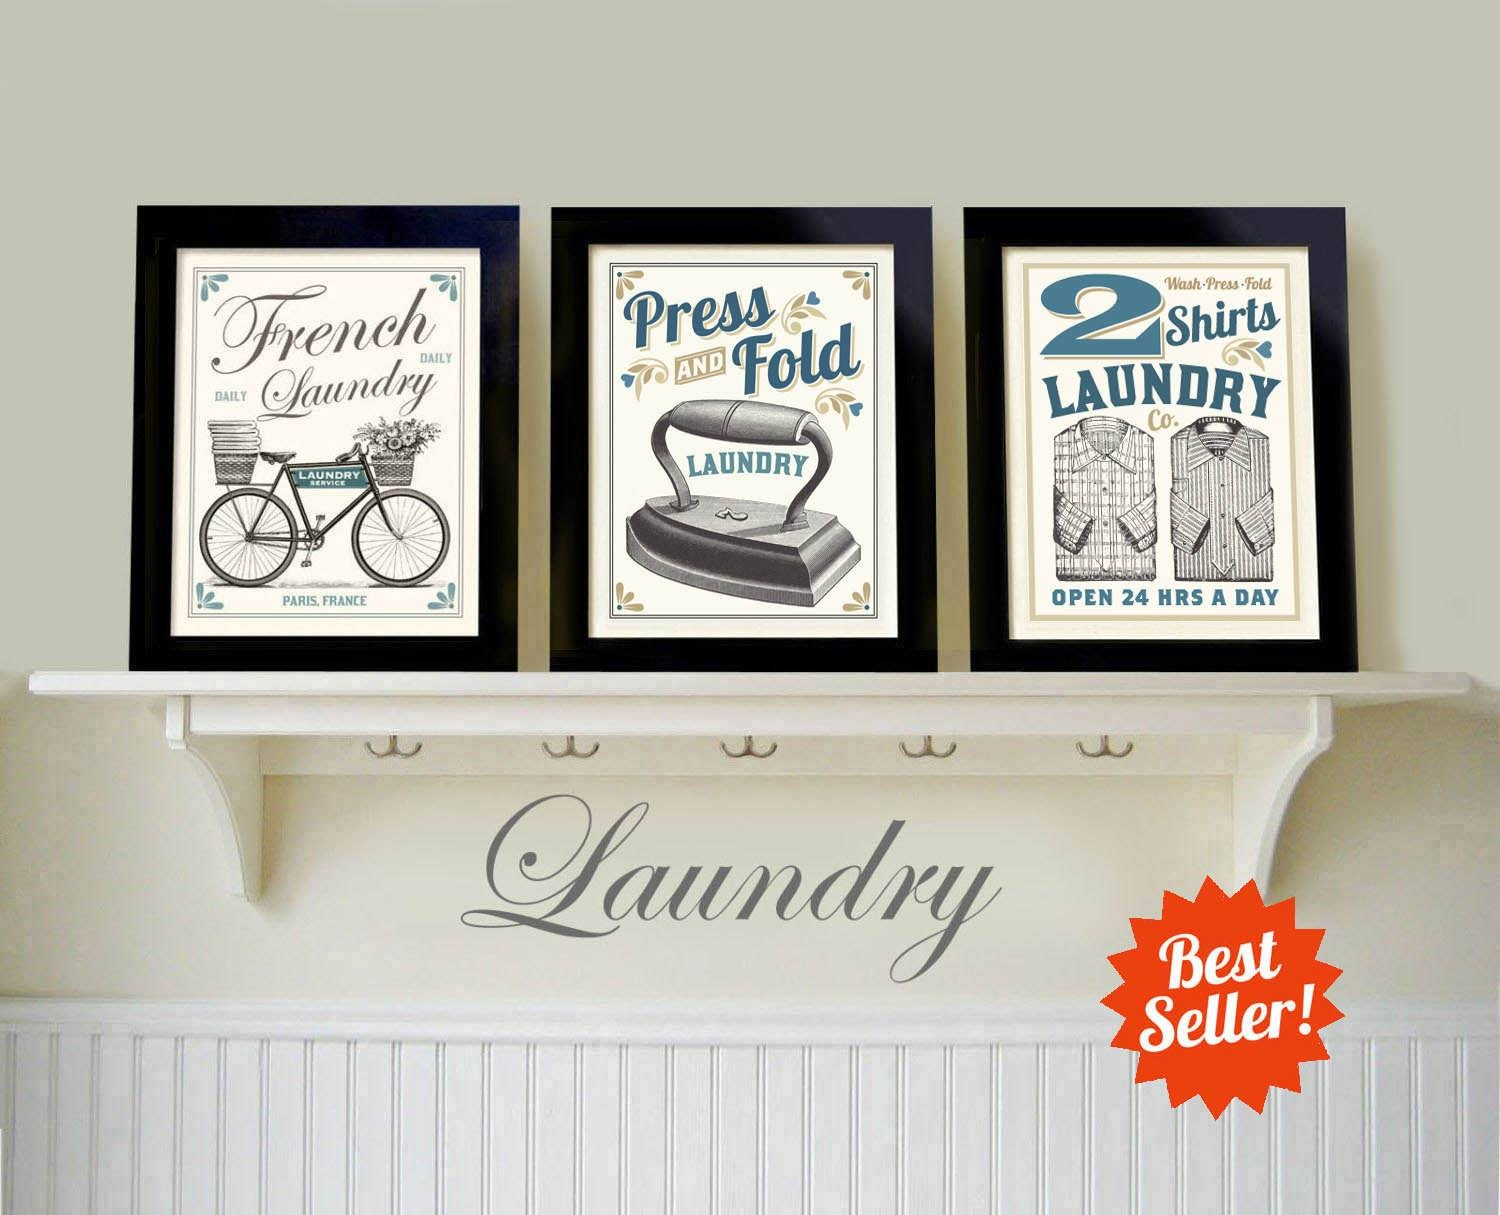 Laundry Room Art Decor French Country Art Vintage Style Intended For Most Popular Laundry Room Wall Art (View 13 of 30)